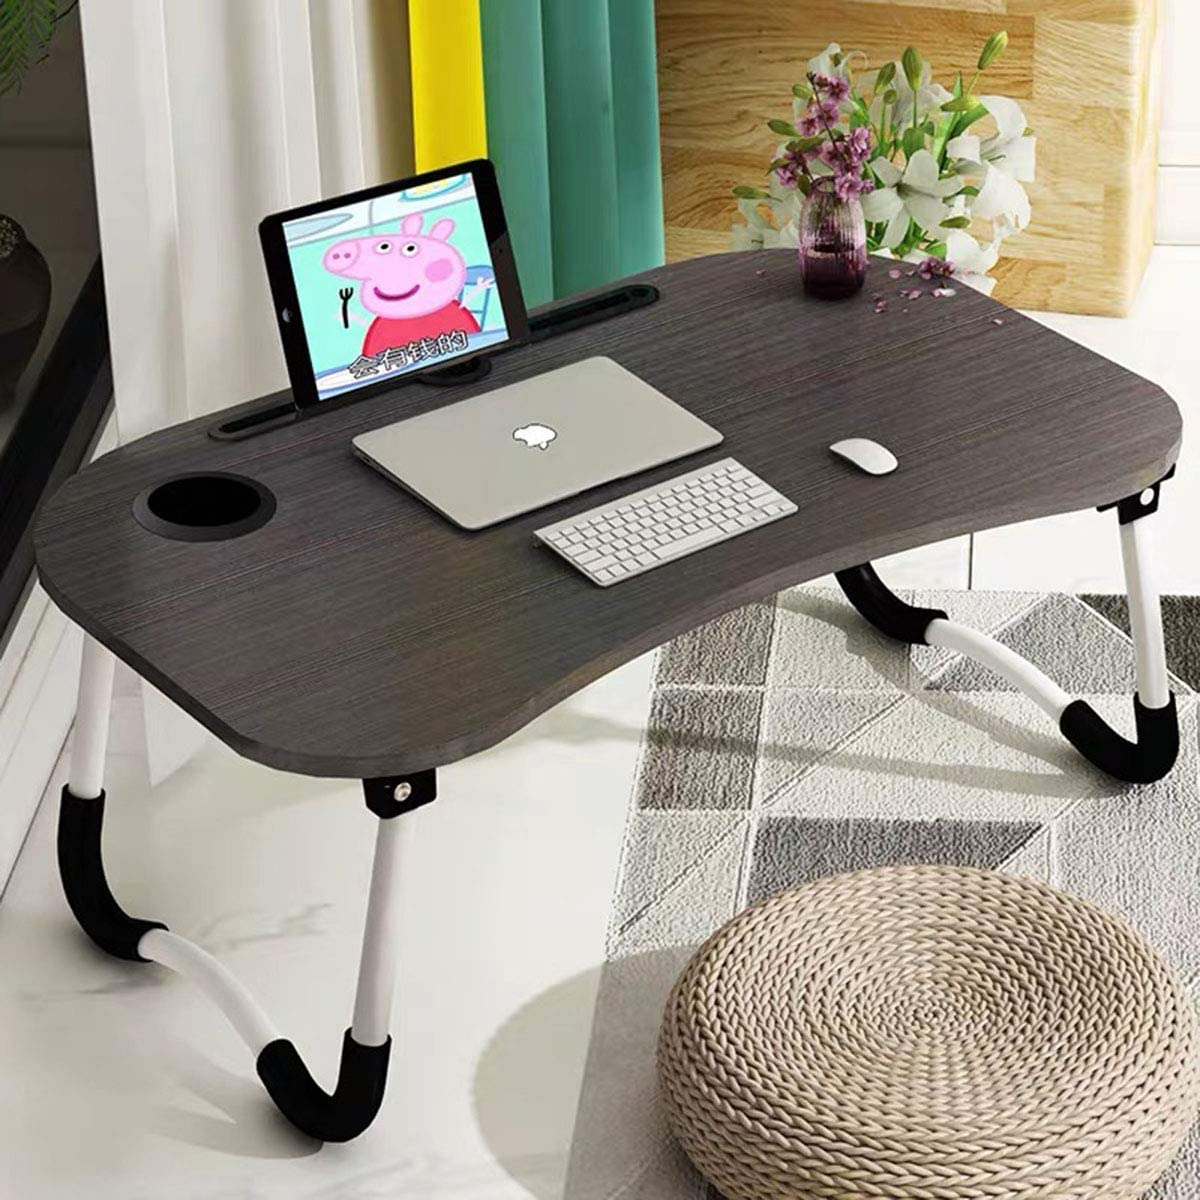 - Barbieya Notebook Table Dorm Desk, Dormitory With Small Desk, Bed